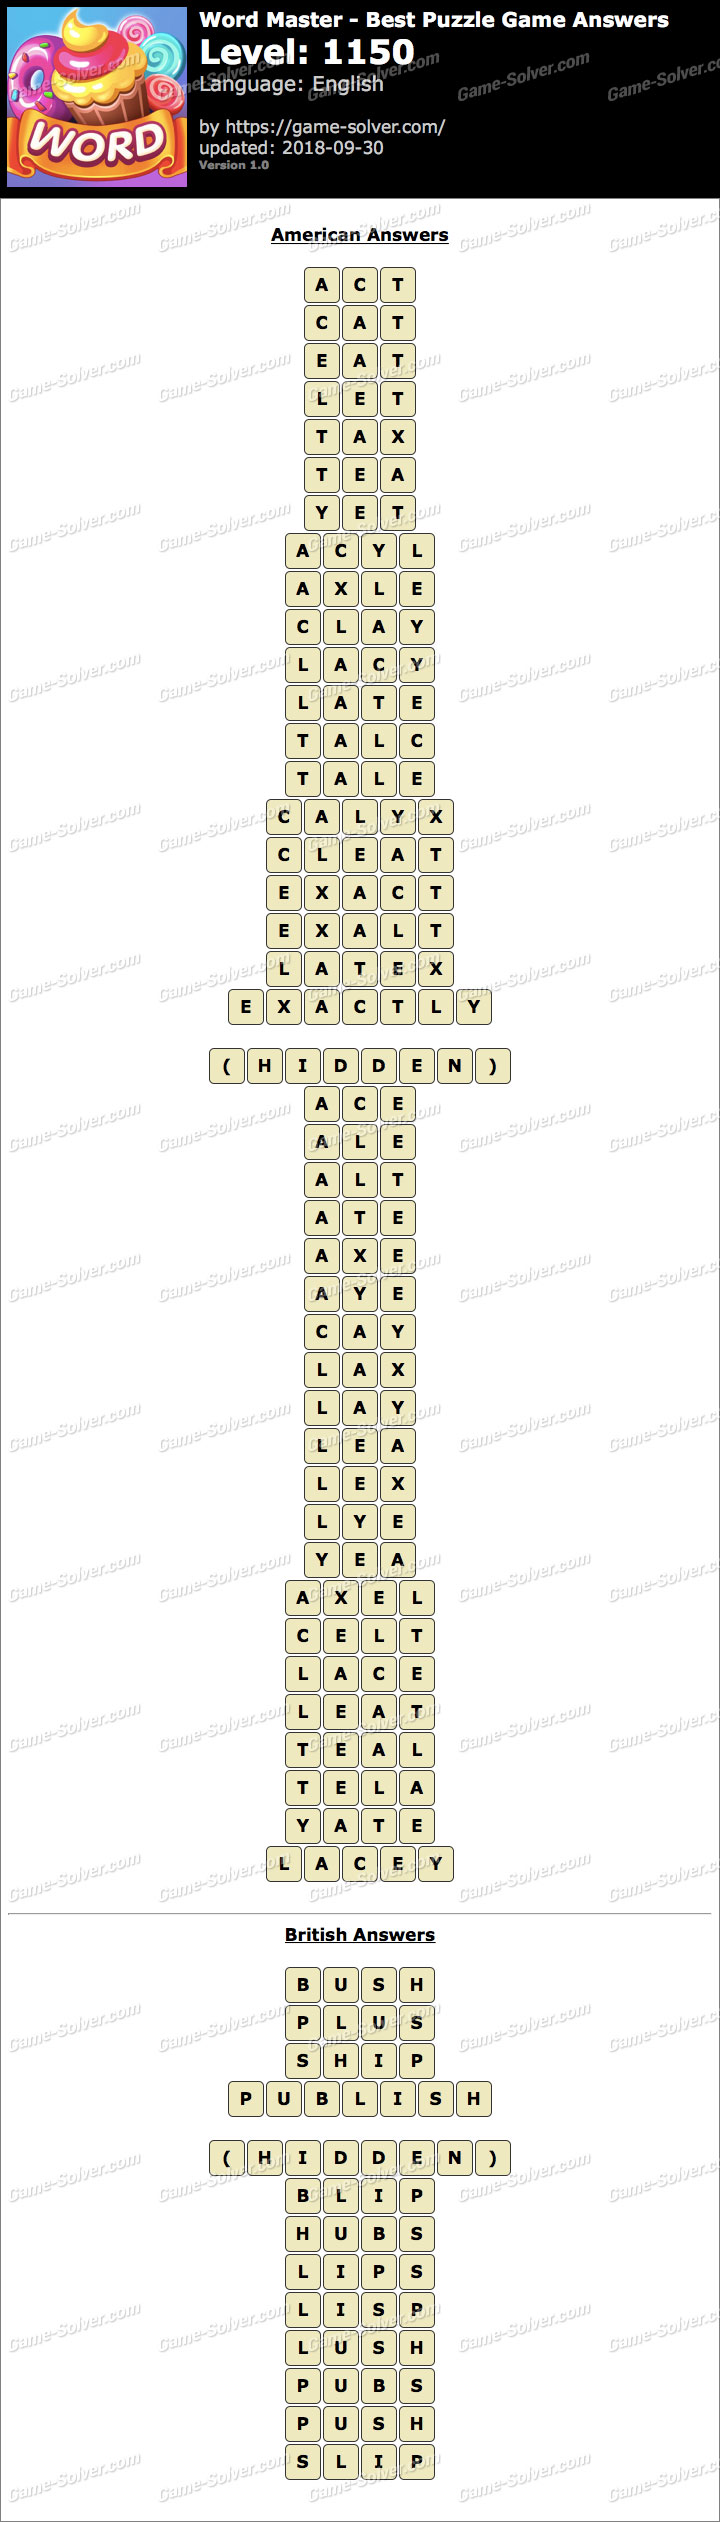 Word Master-Best Puzzle Game Level 1150 Answers